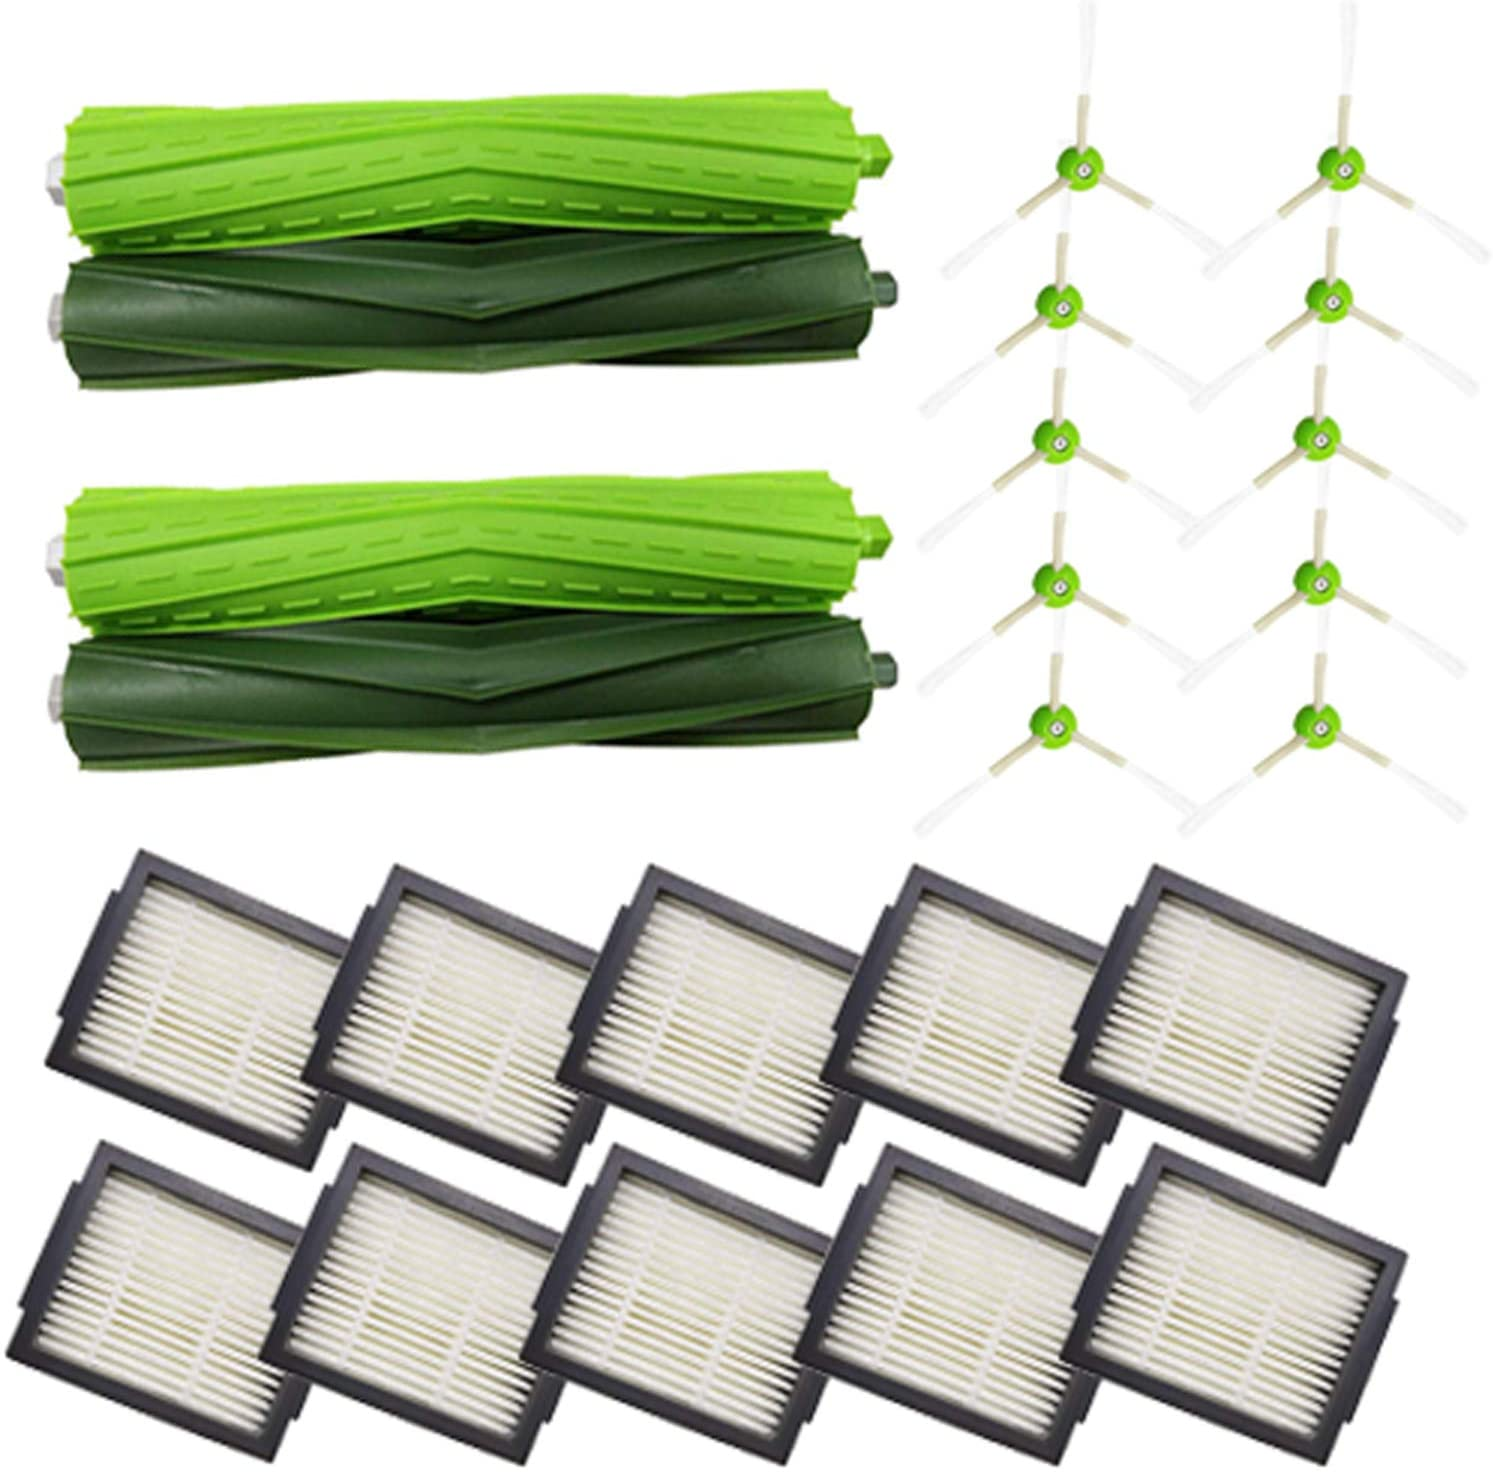 Amyehouse Replacement Parts Kit for iRobot Roomba i7 i7+ Plus E5 E6 Vacuum,Including 2 Set of Multi-Surface Rubber Brushes & 10 High-Efficiency HEPA Filters & 10 Edge-Sweeping Side Brushes